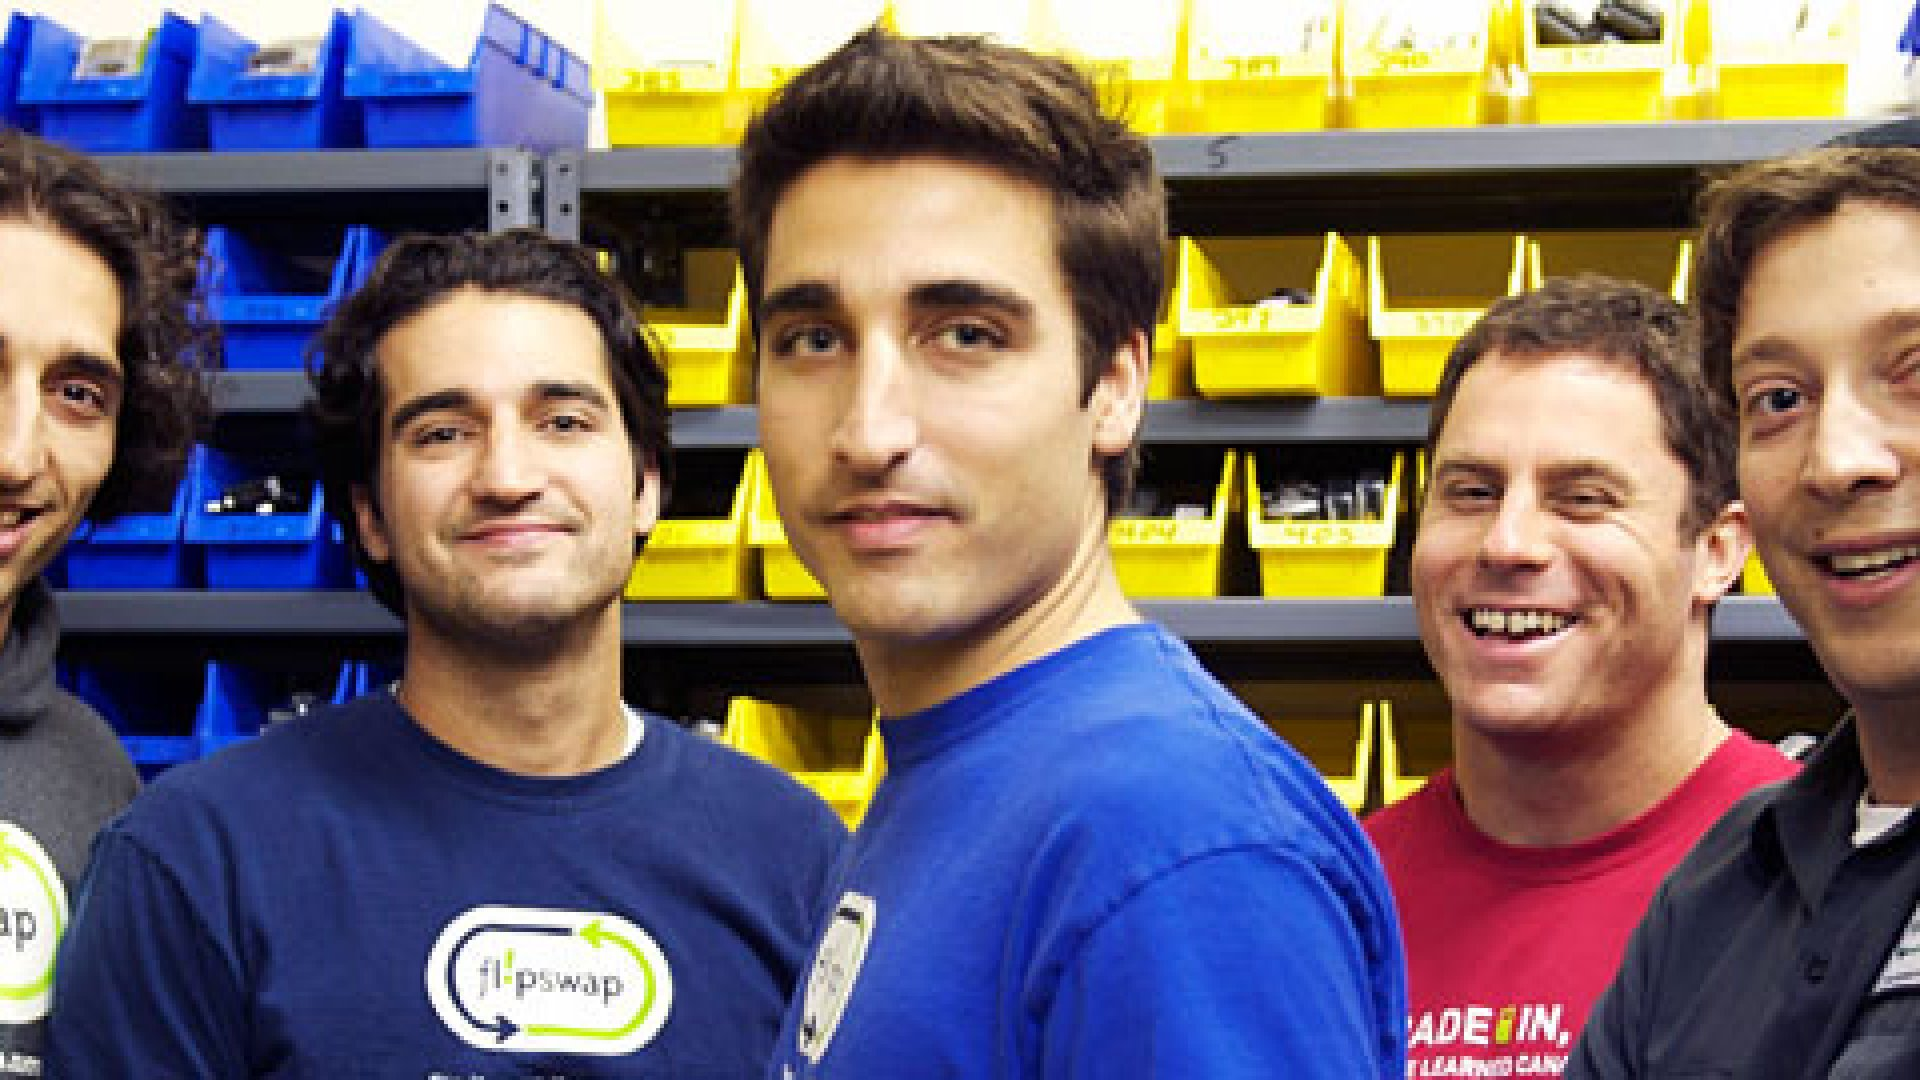 <b>FLIPSWAP FOUNDERS</b> Sohrob Farudi, Cyrus Farudi, Rahmeen Farudi, Andrew Berman and Edo Cohen (from left to right) collect used cell phones and resell them.